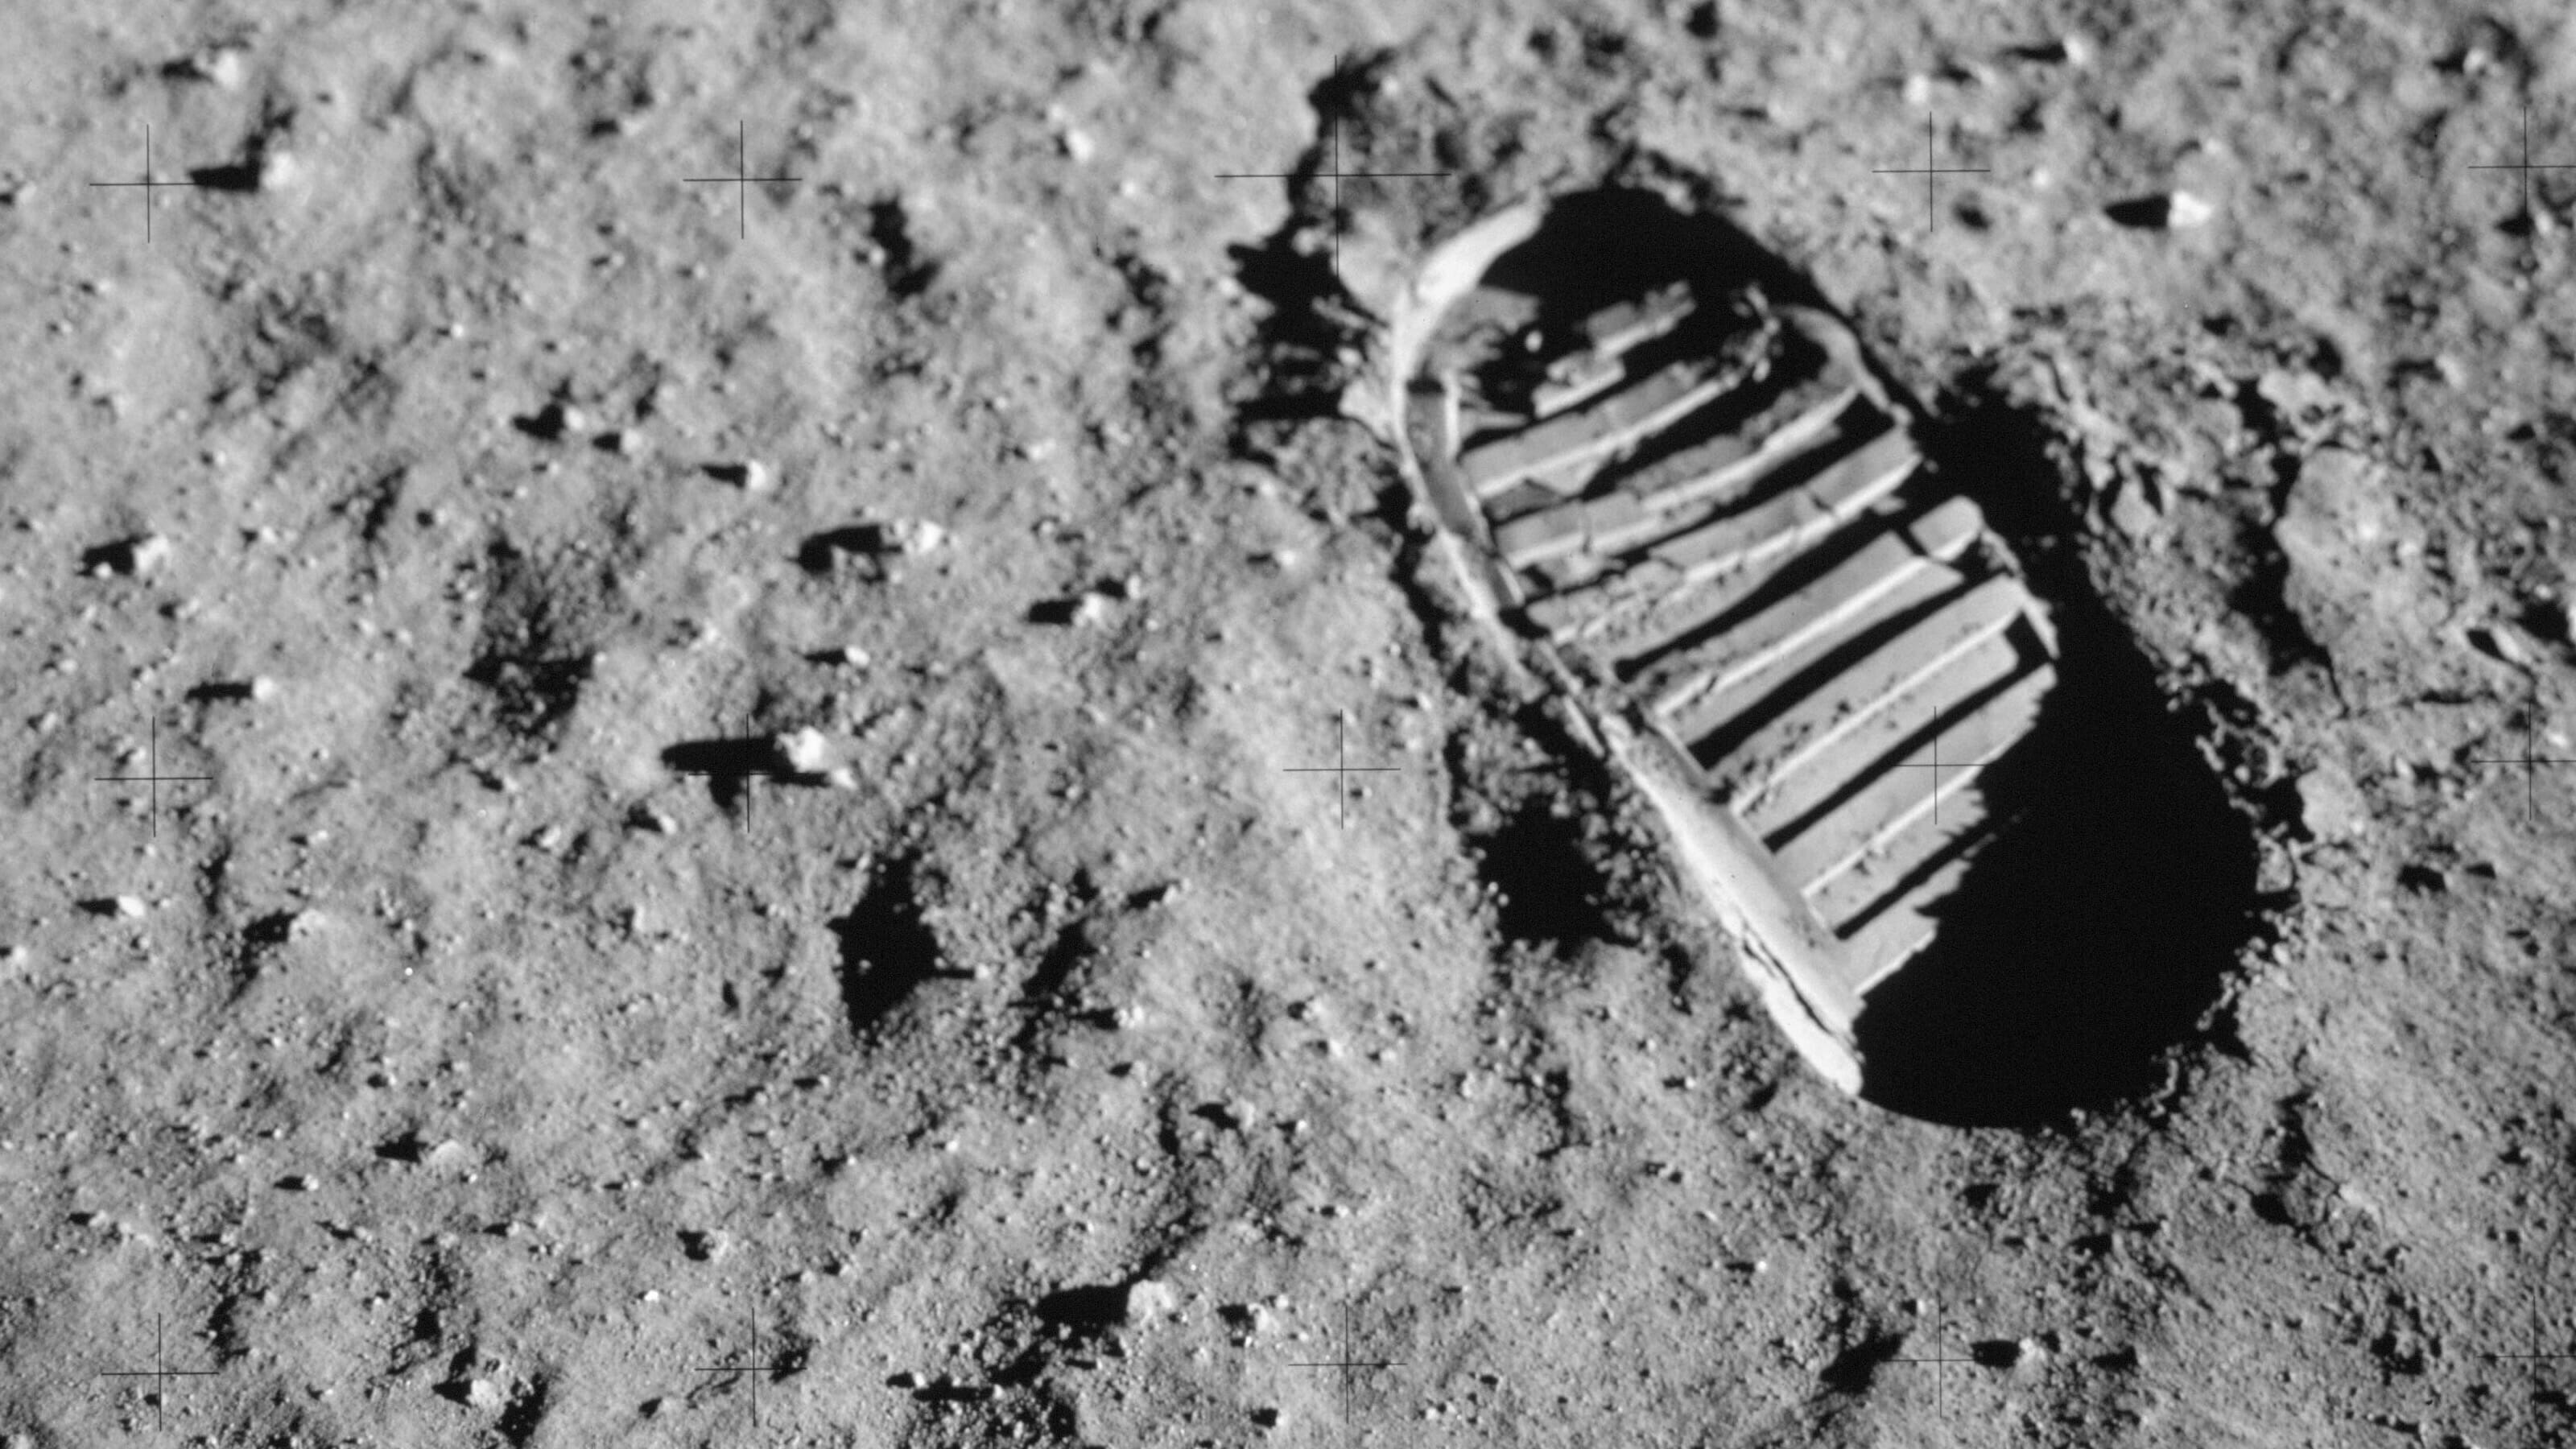 First footprints on the moon Apollo 11 NASA